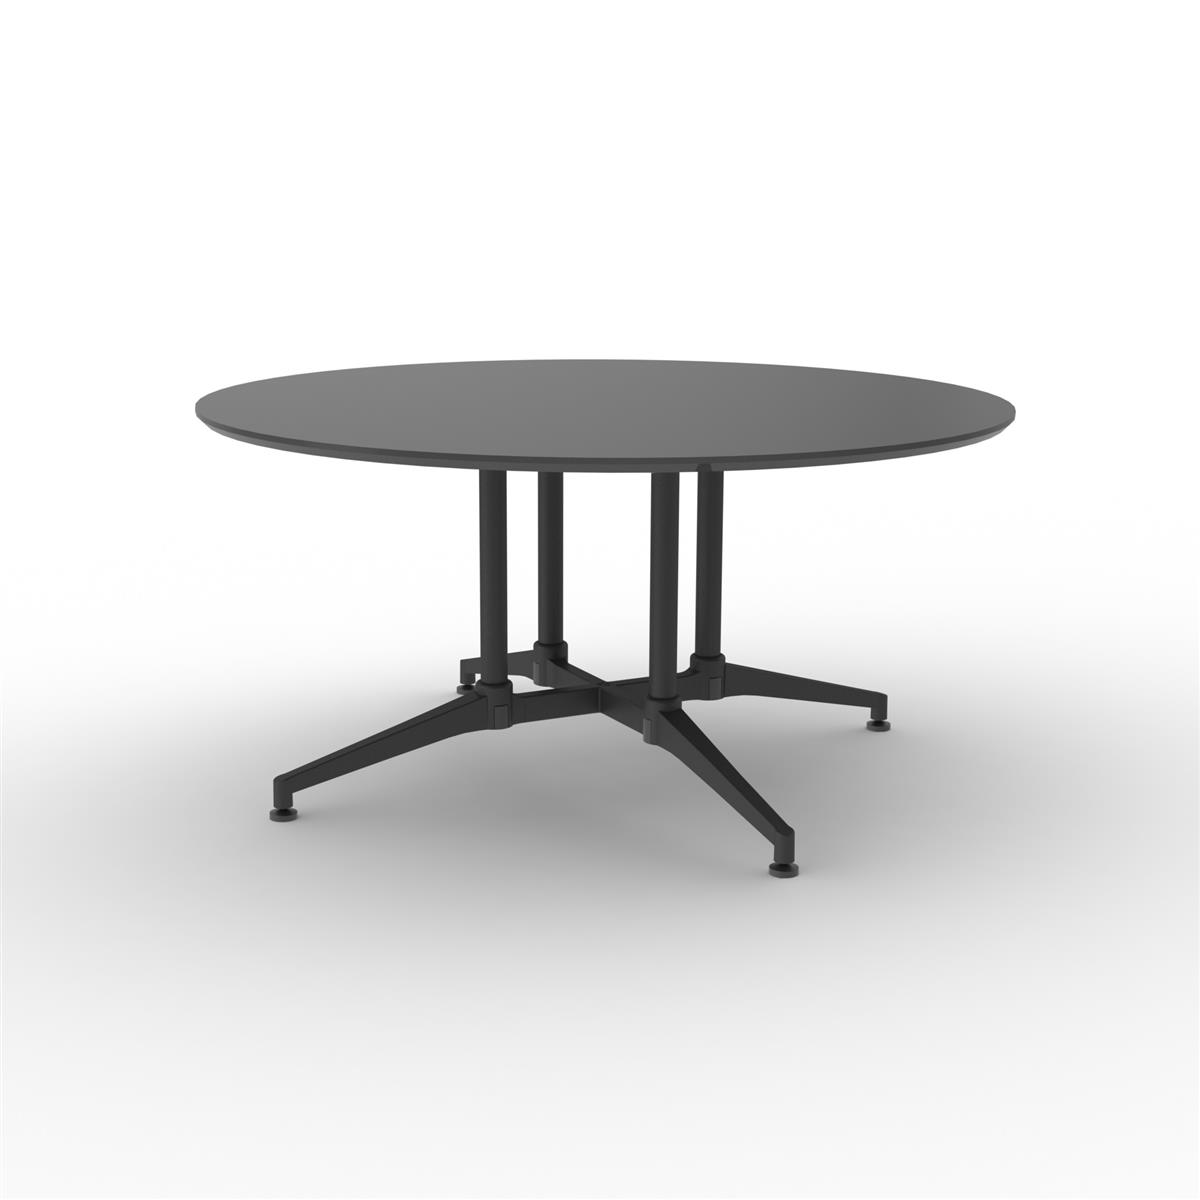 X1 Seamless Table Ø150 cm - sort linoleum & sort understell